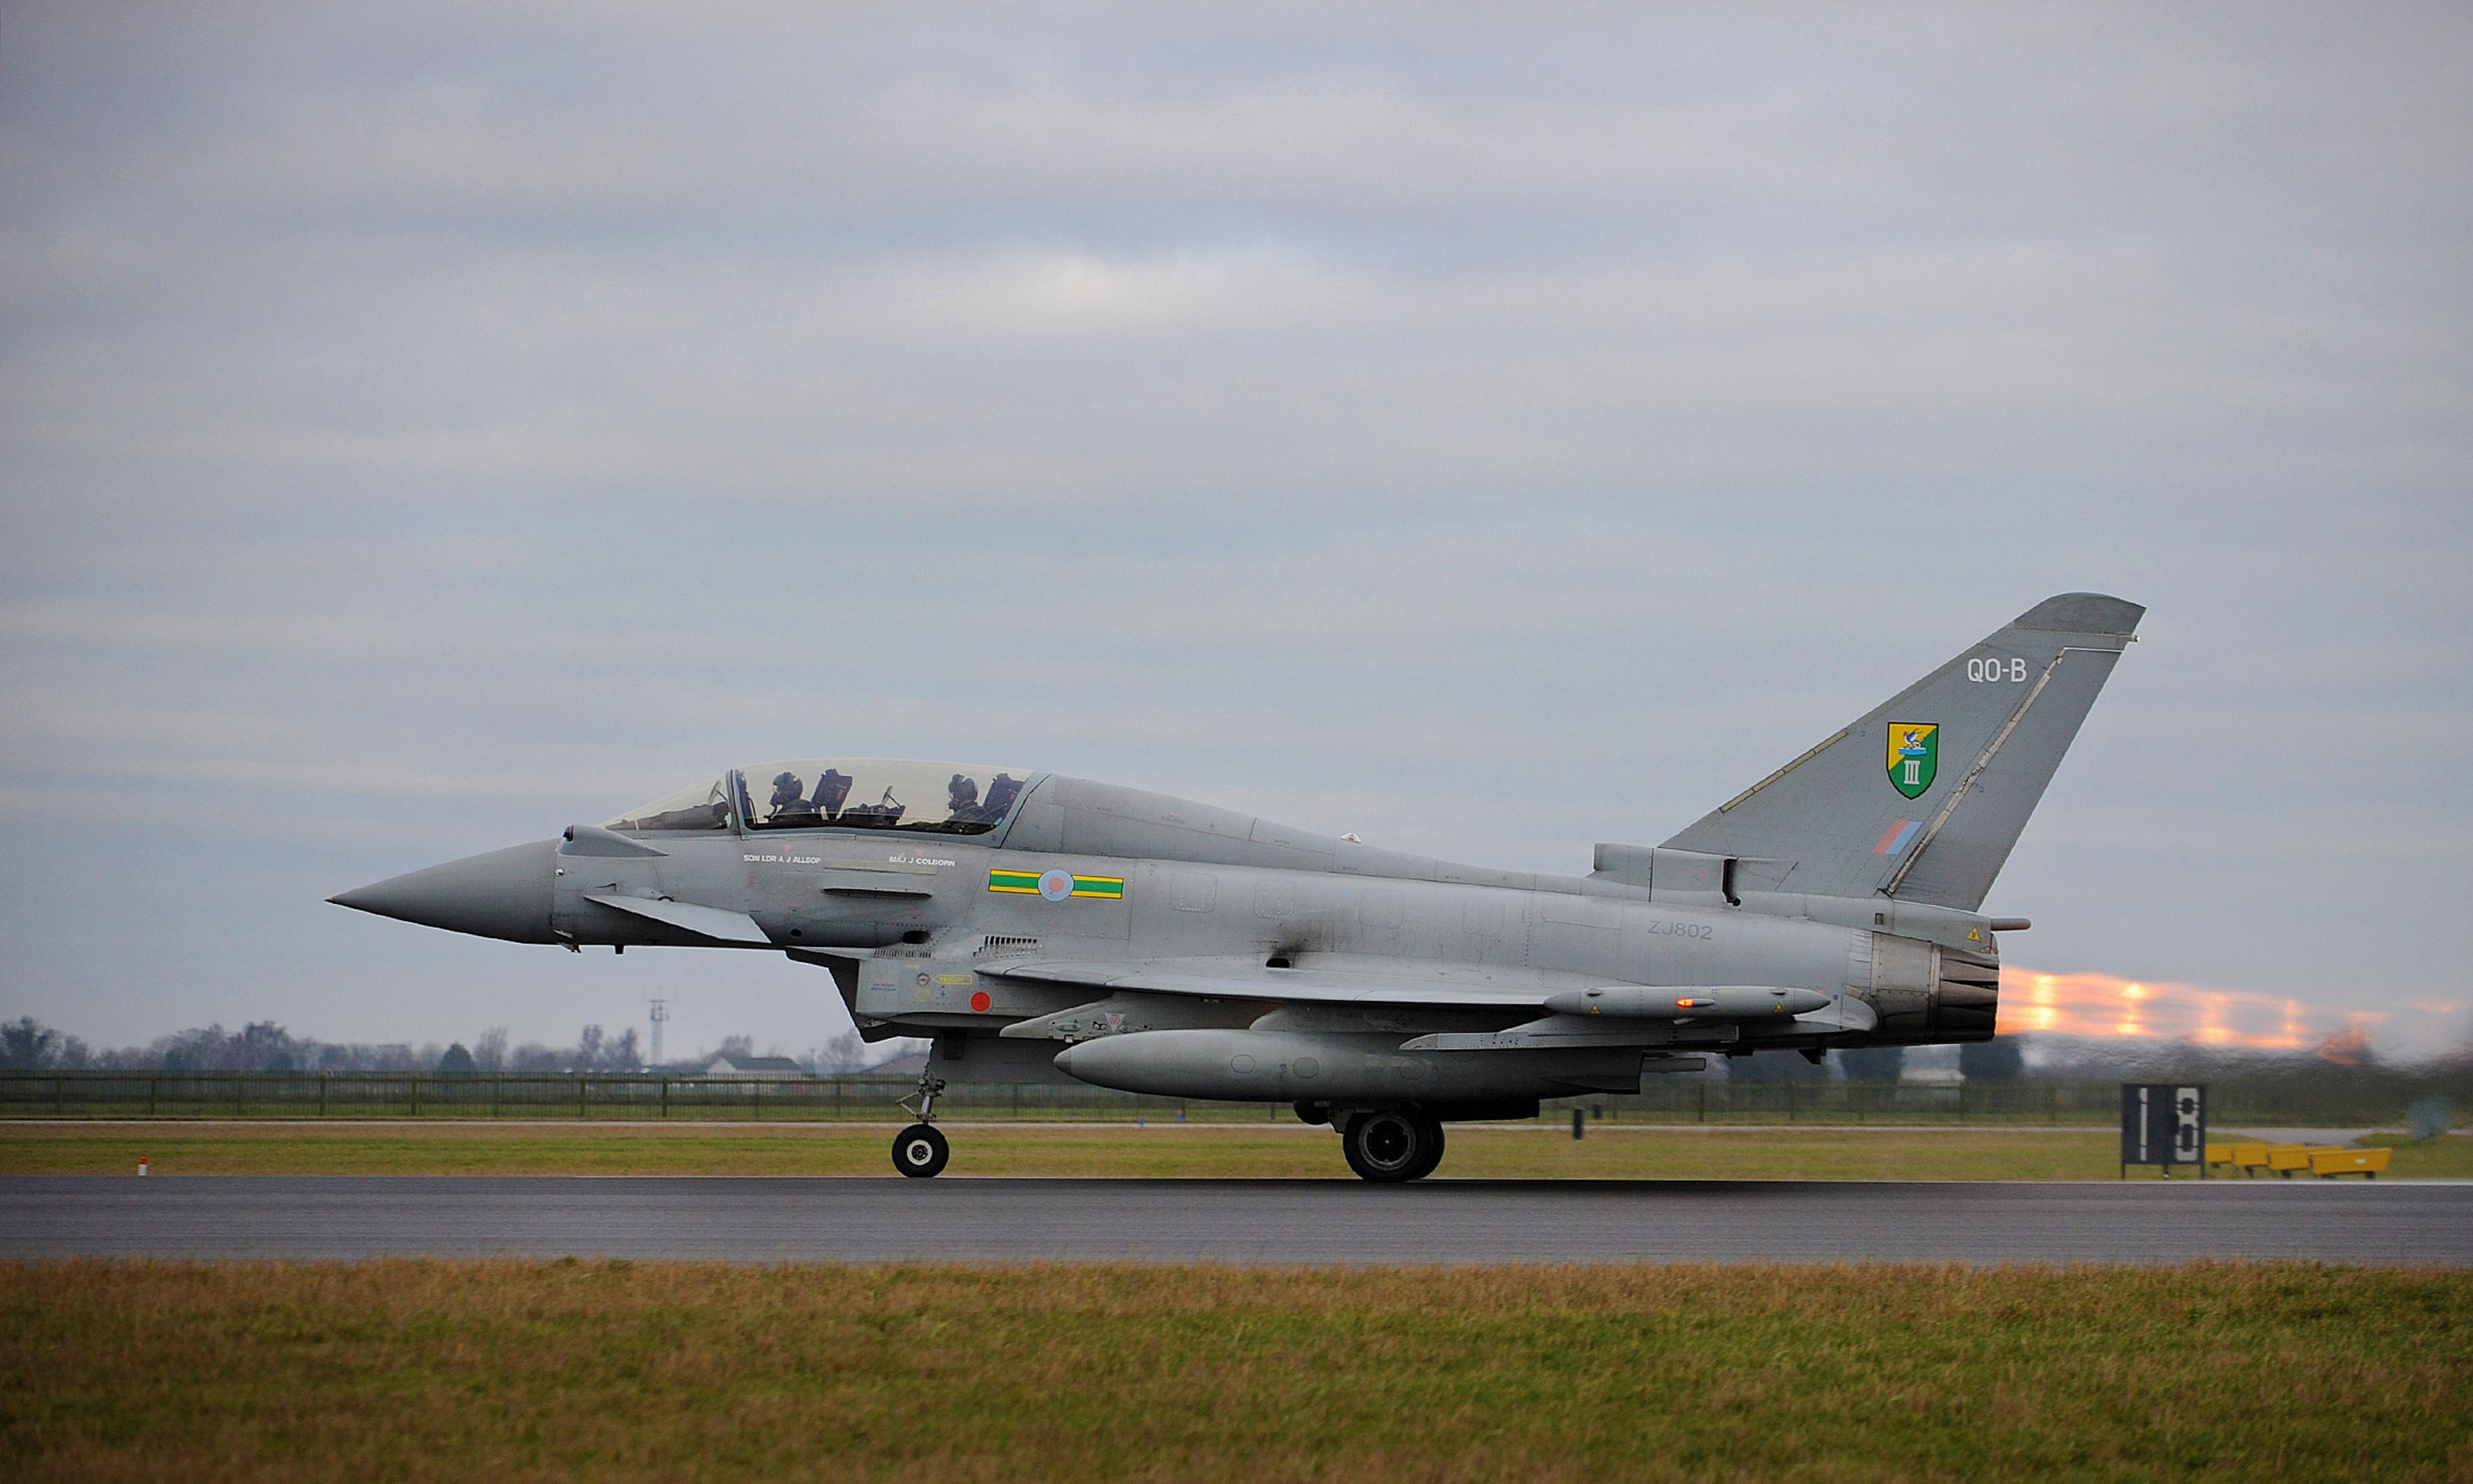 Woman arrested after Jet2 plane intercepted by Typhoon fighters